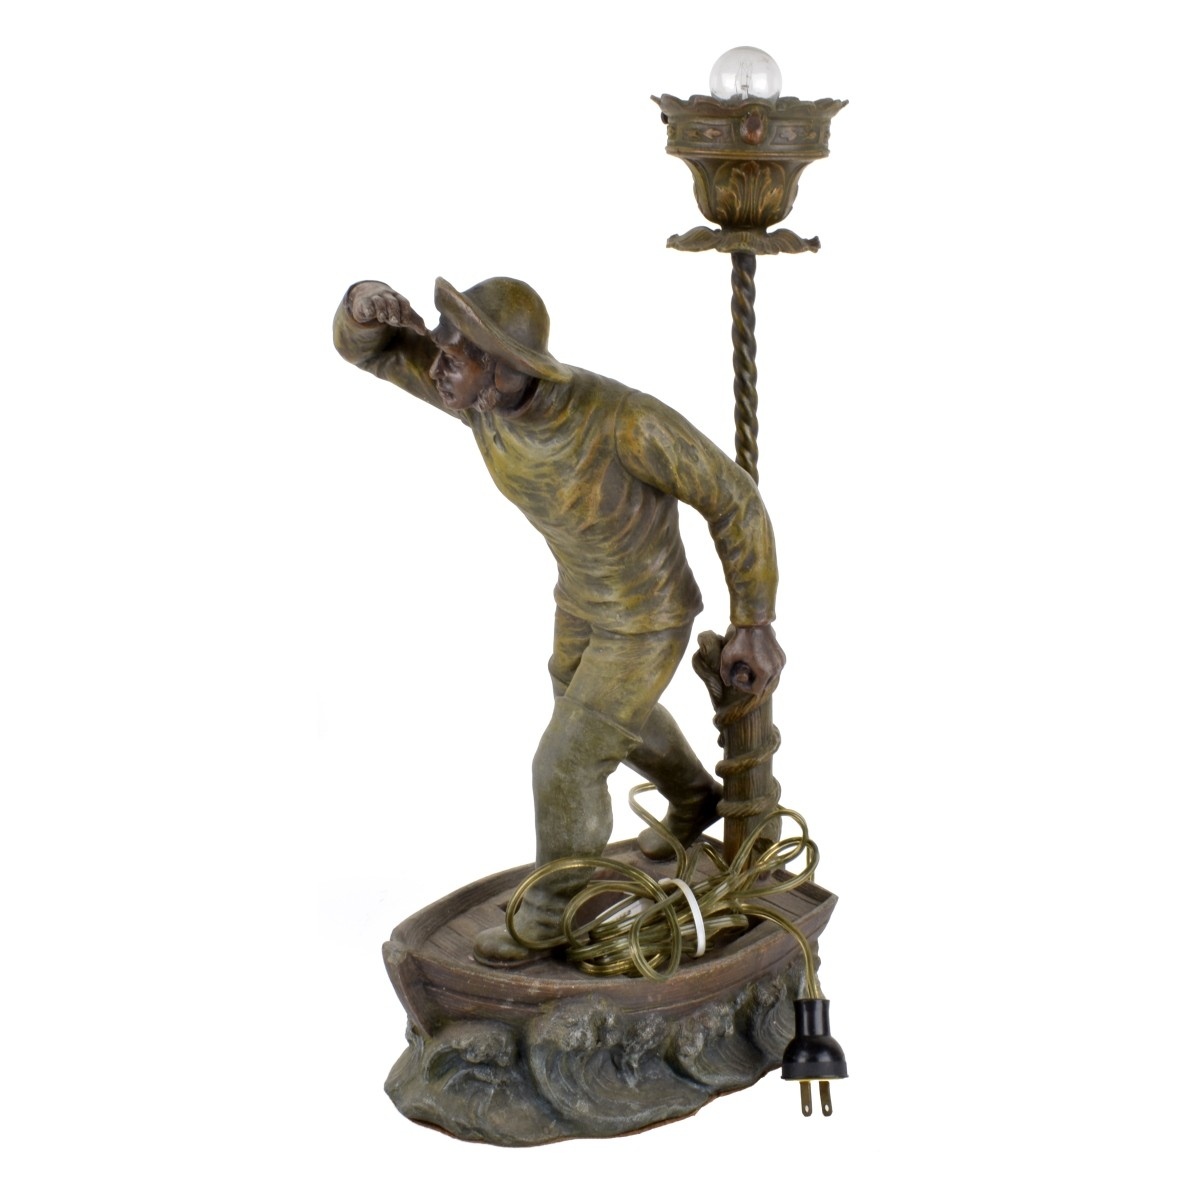 Antique French Spelter Sculpture as a Lamp